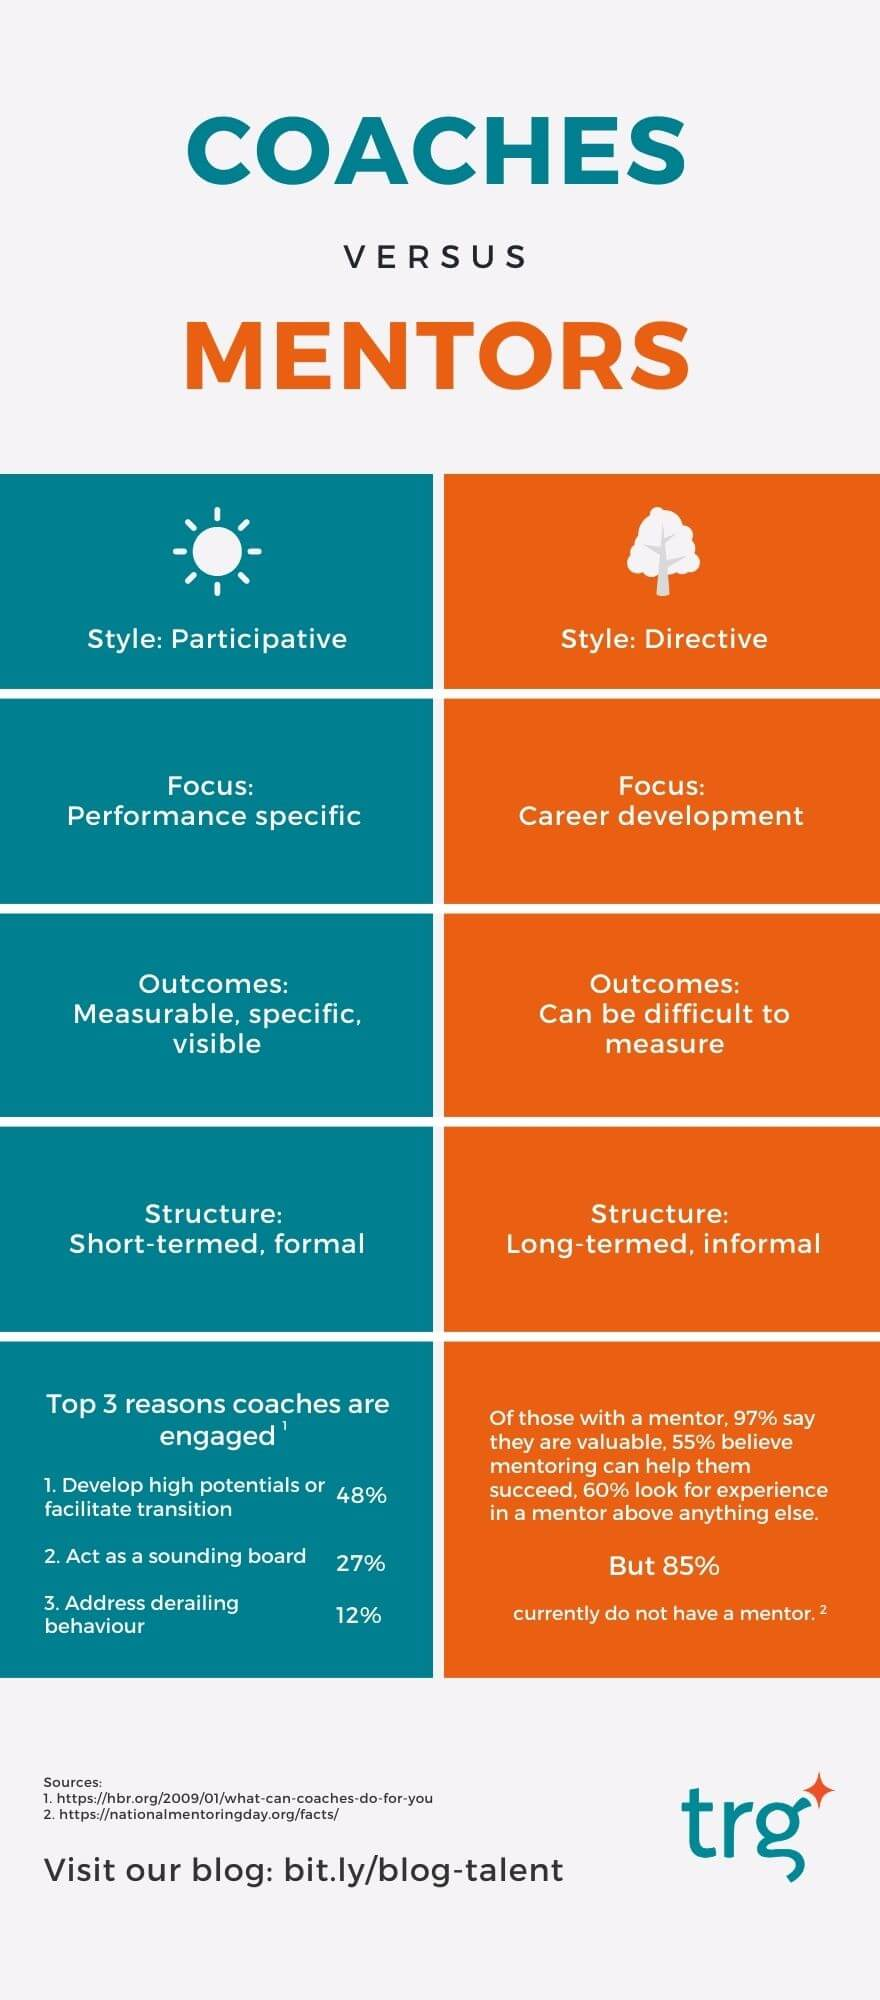 Differences between coaches and mentors